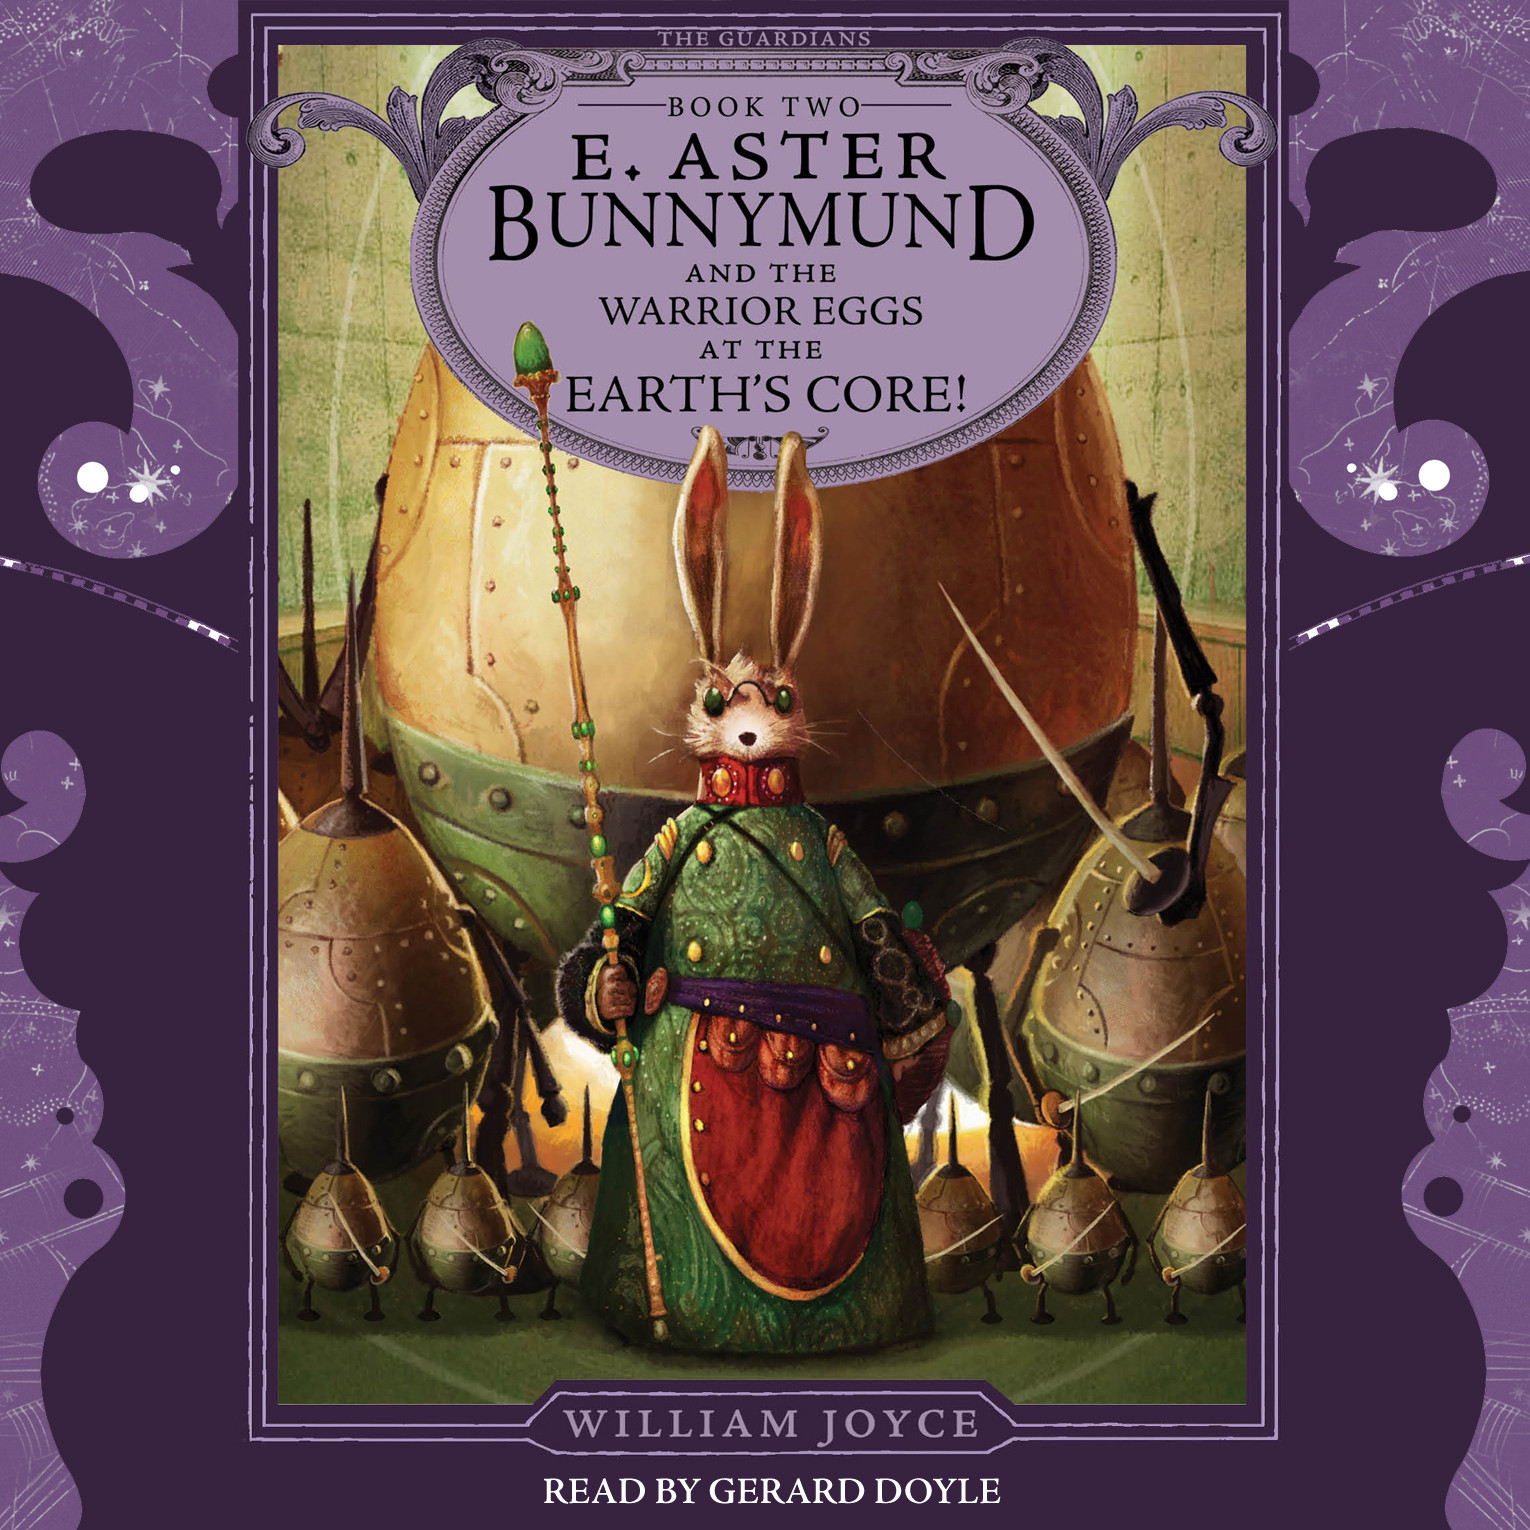 Printable E. Aster Bunnymund and the Warrior Eggs at the Earth's Core! Audiobook Cover Art